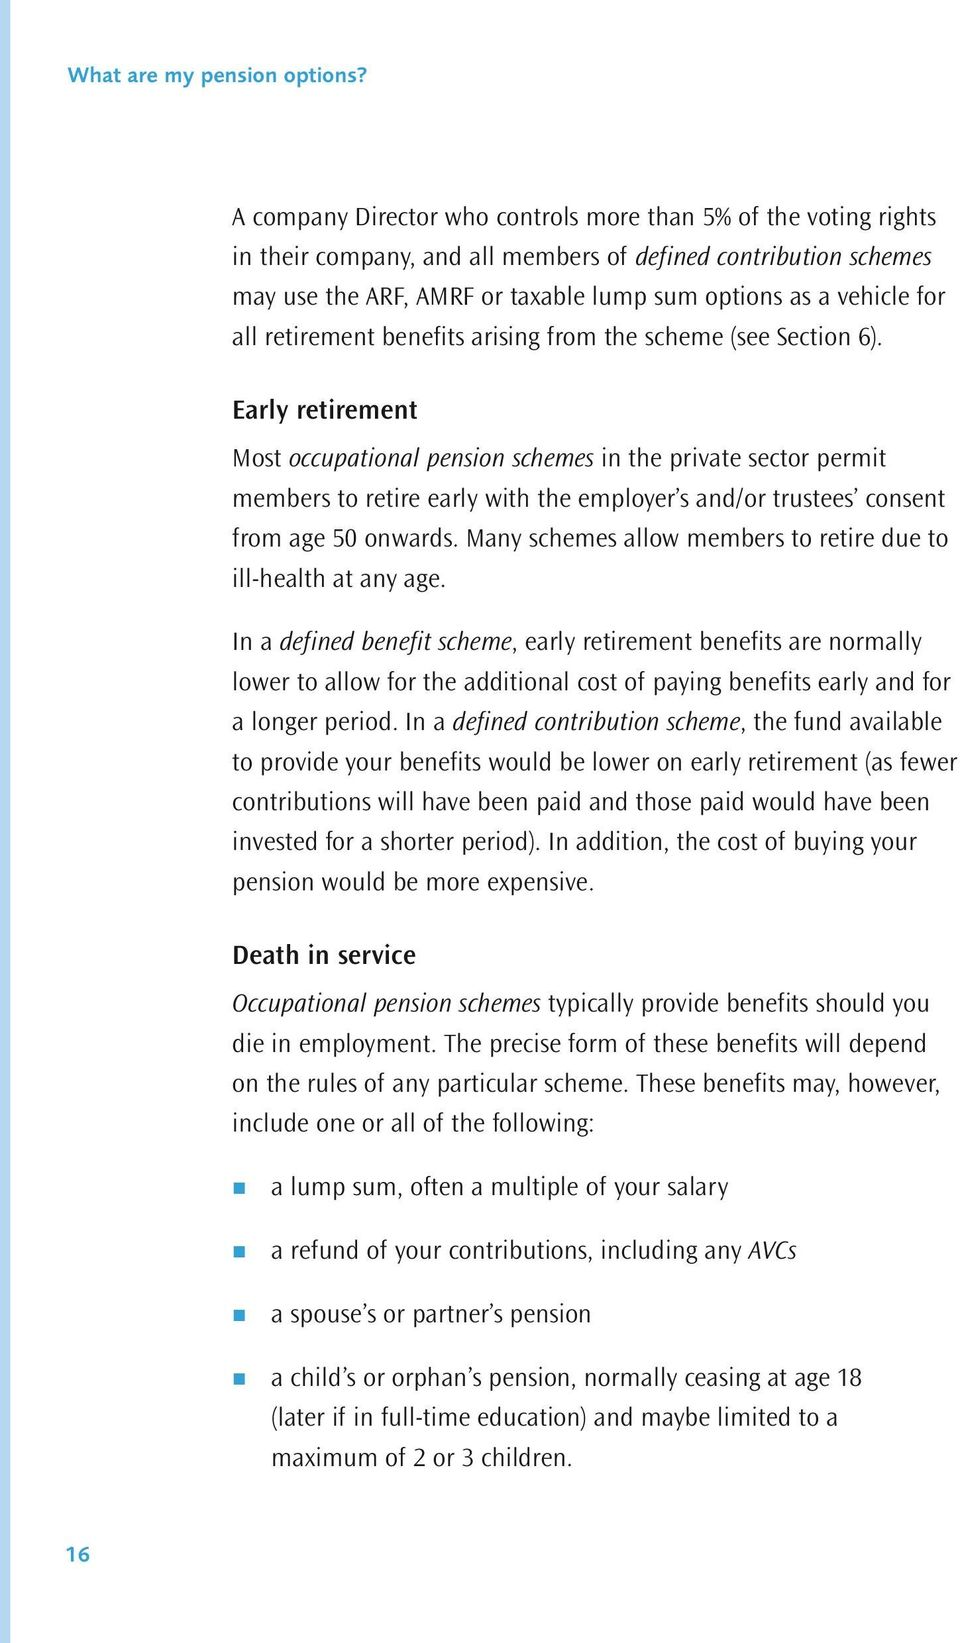 Early retirement Most occupational pension schemes in the private sector permit members to retire early with the employer s and/or trustees consent from age 50 onwards.